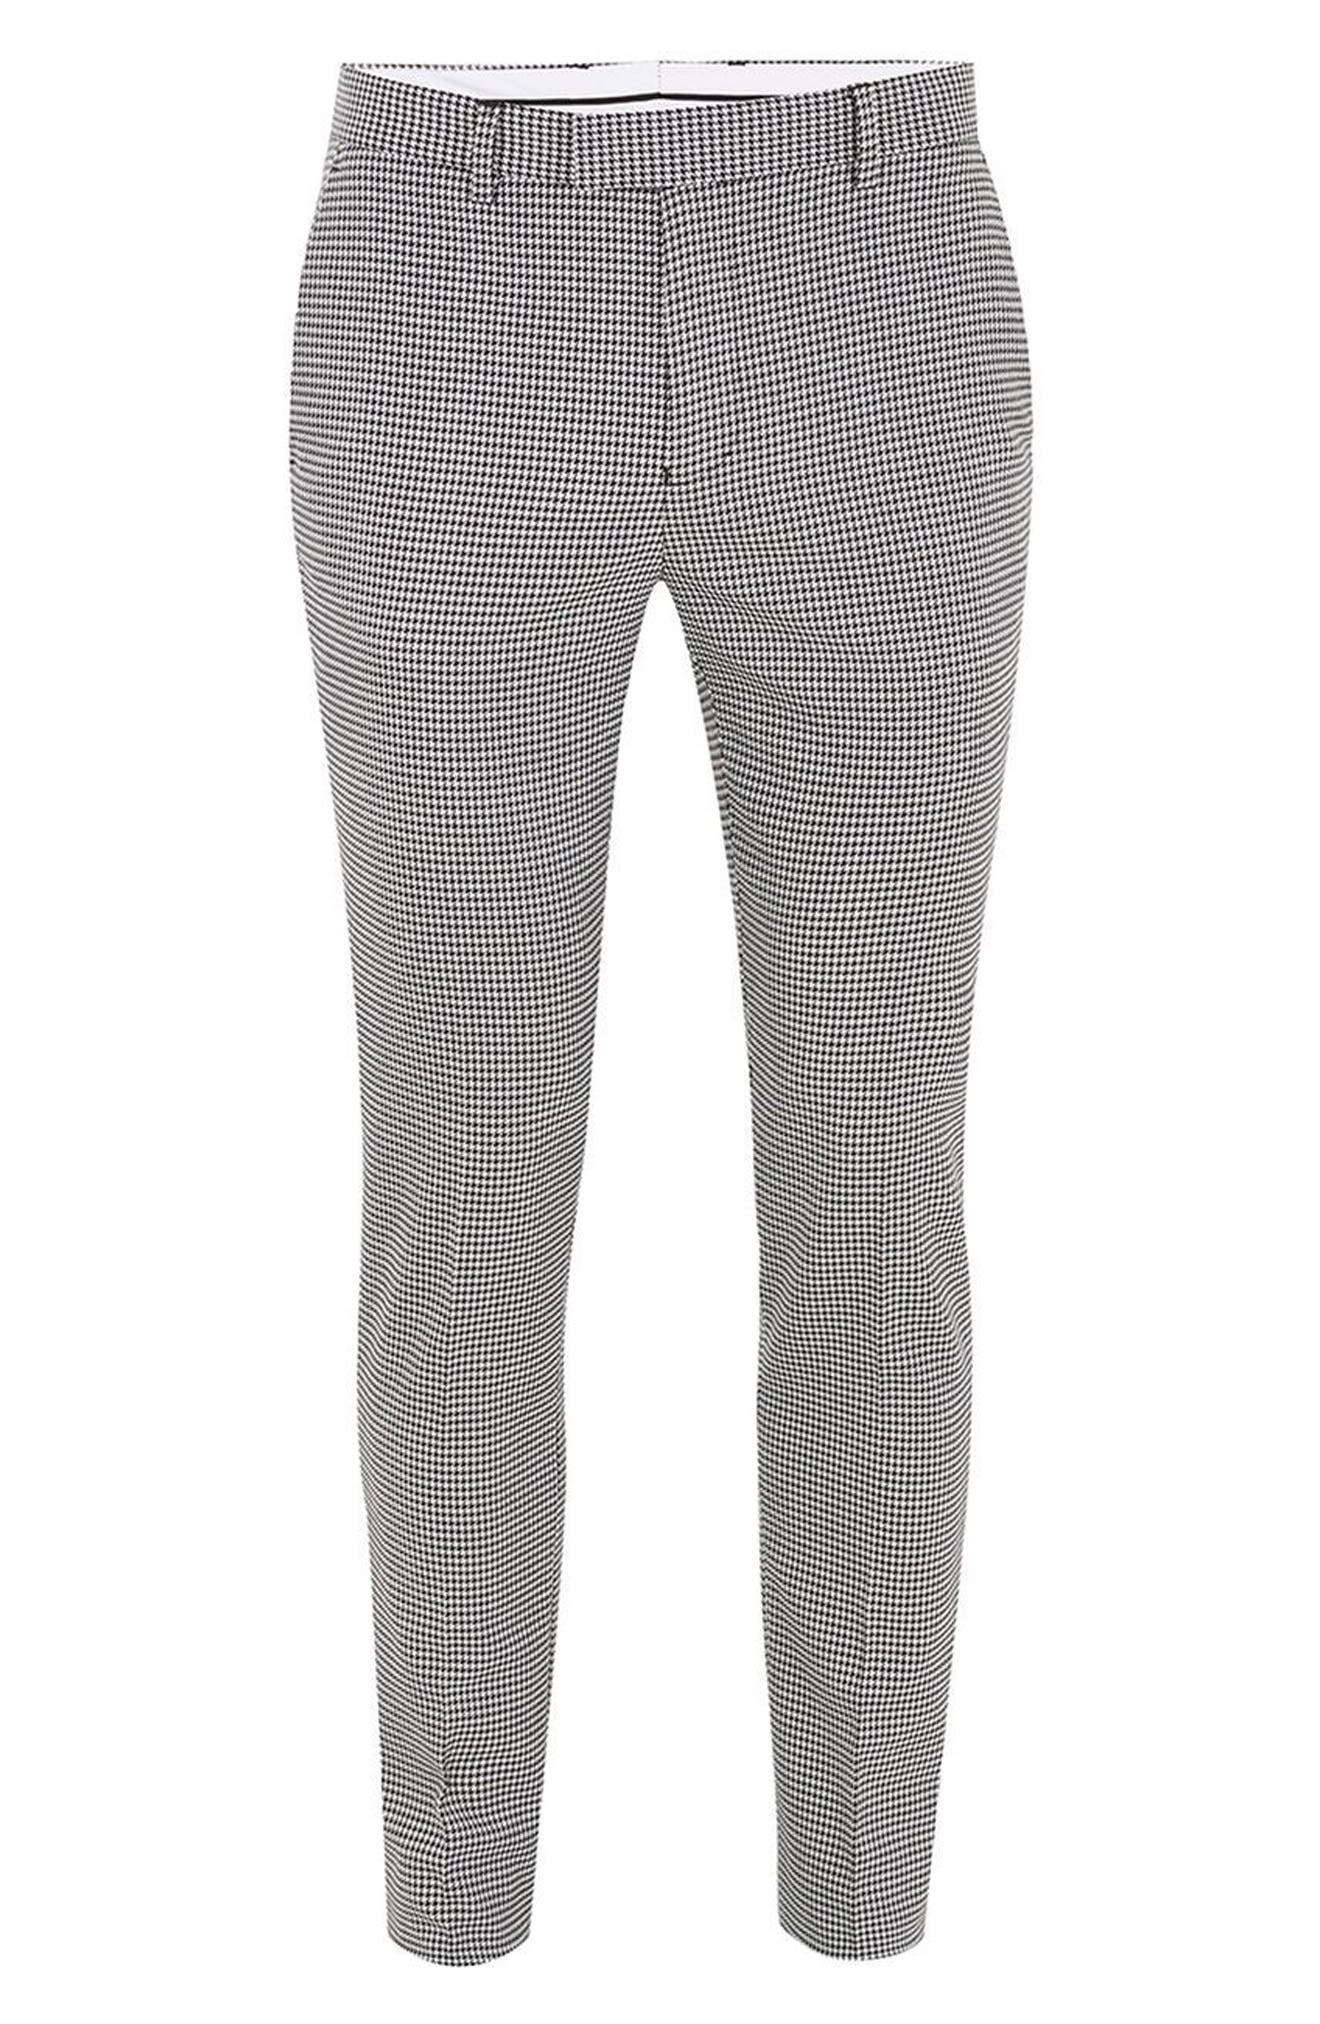 Ultra Skinny Fit Houndstooth Suit Trousers,                             Alternate thumbnail 4, color,